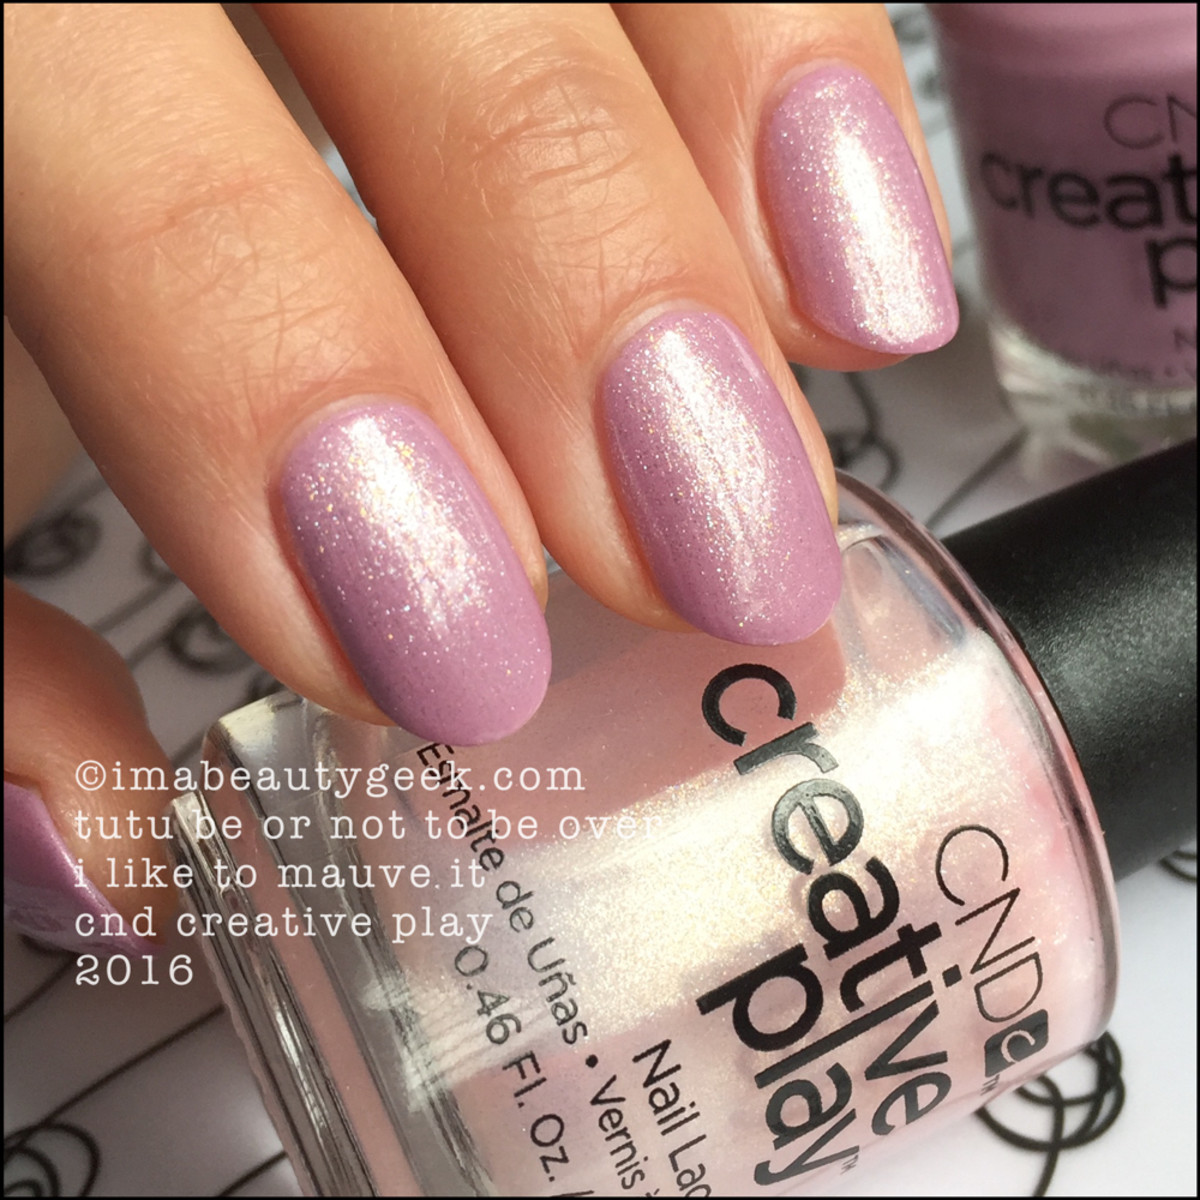 CND Creative Play Tutu Be Or Not To Be over I Like To Mauve It_CND Creative Play Swatches